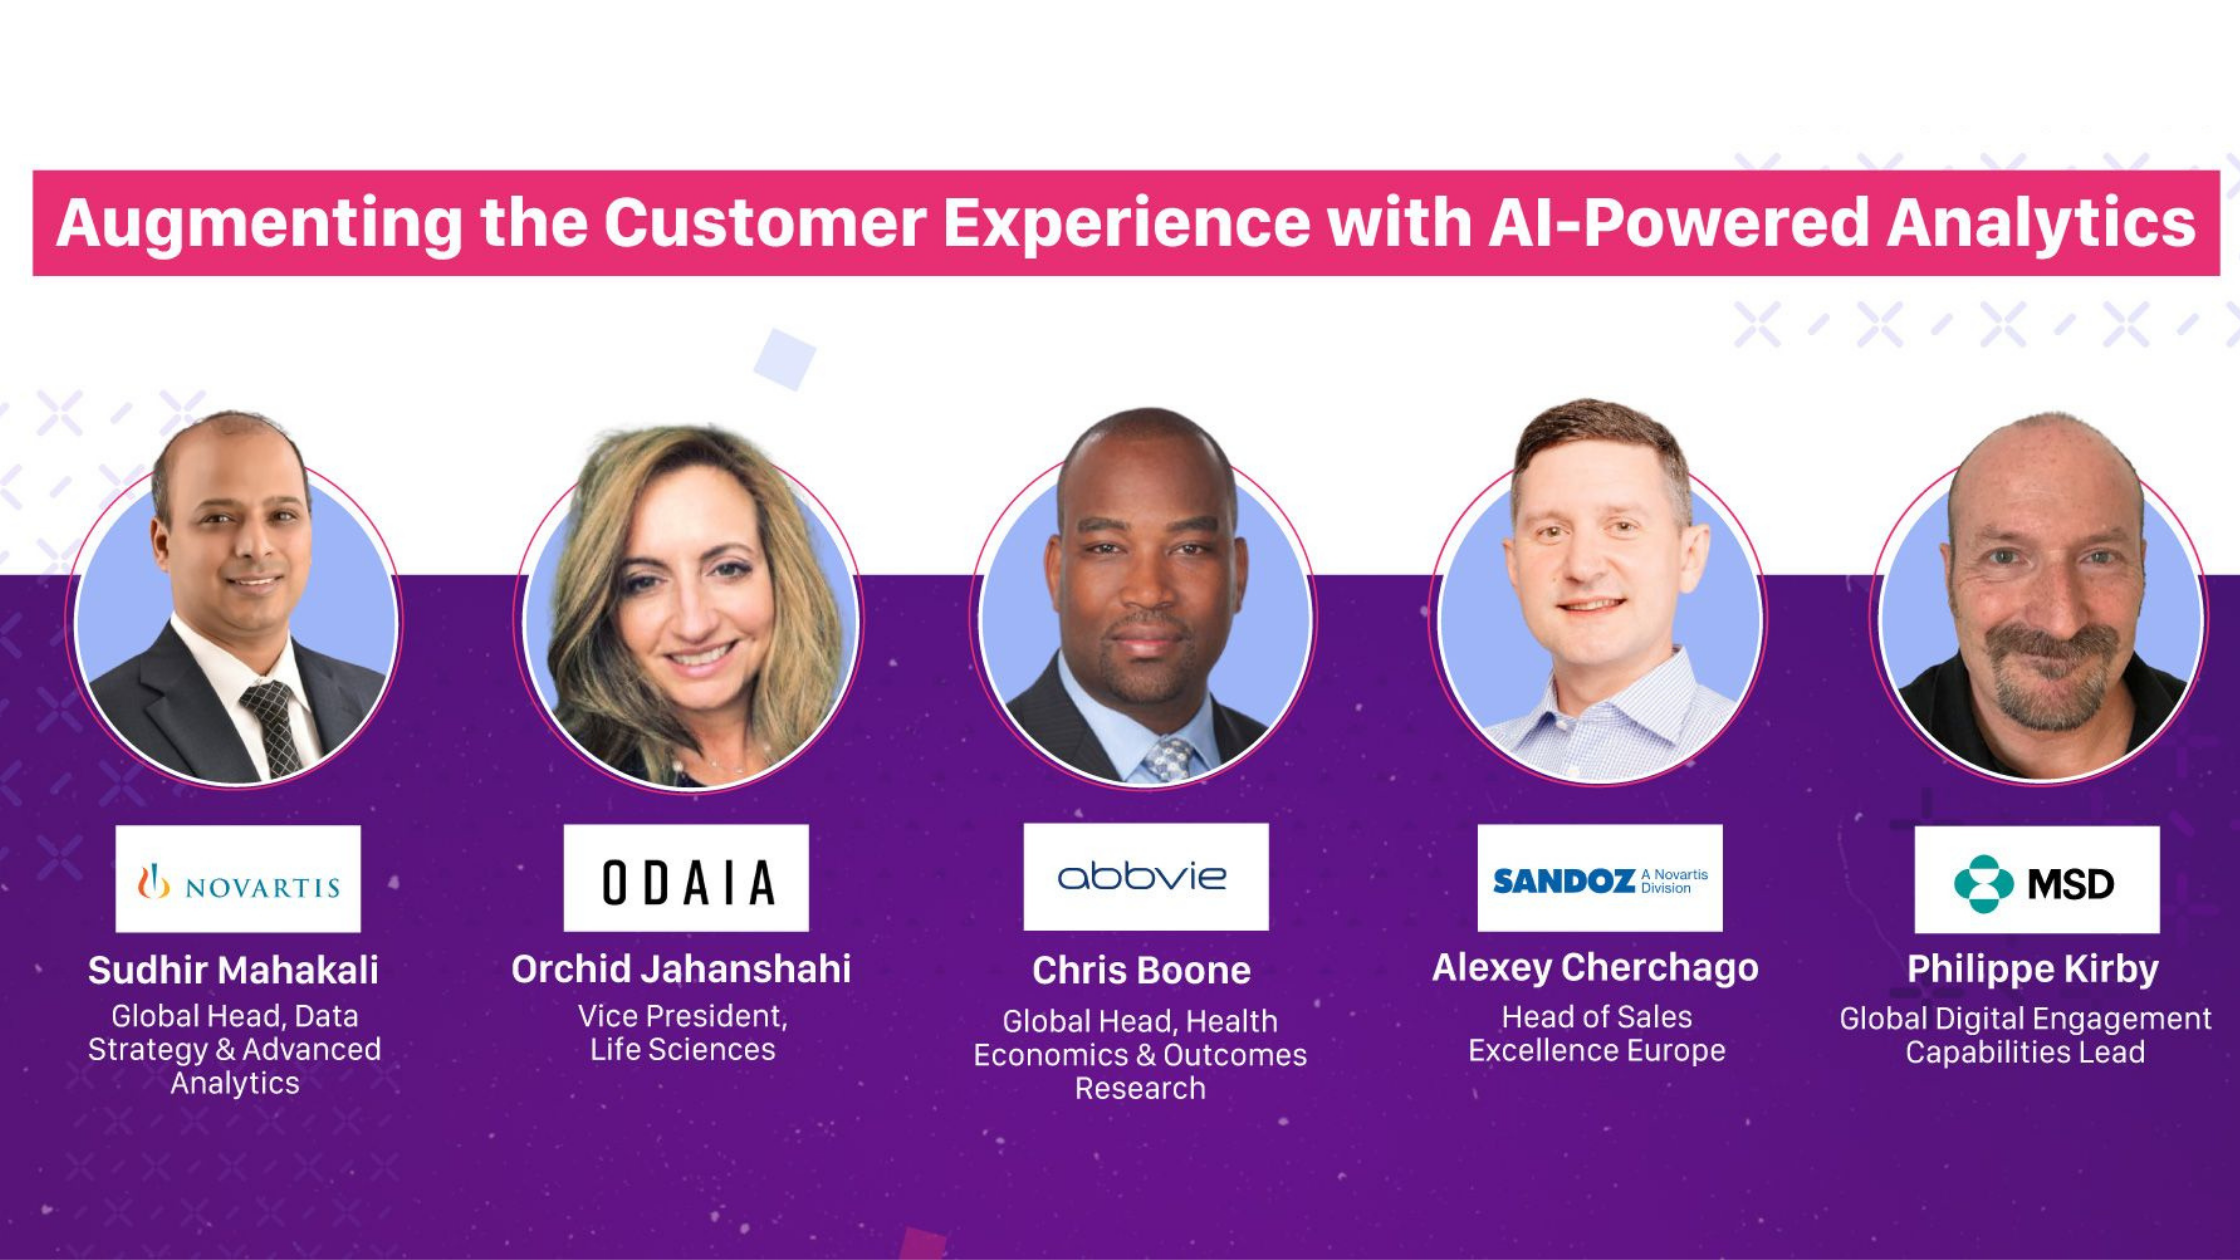 Augmenting Customer Experience with AI Powered Analytics